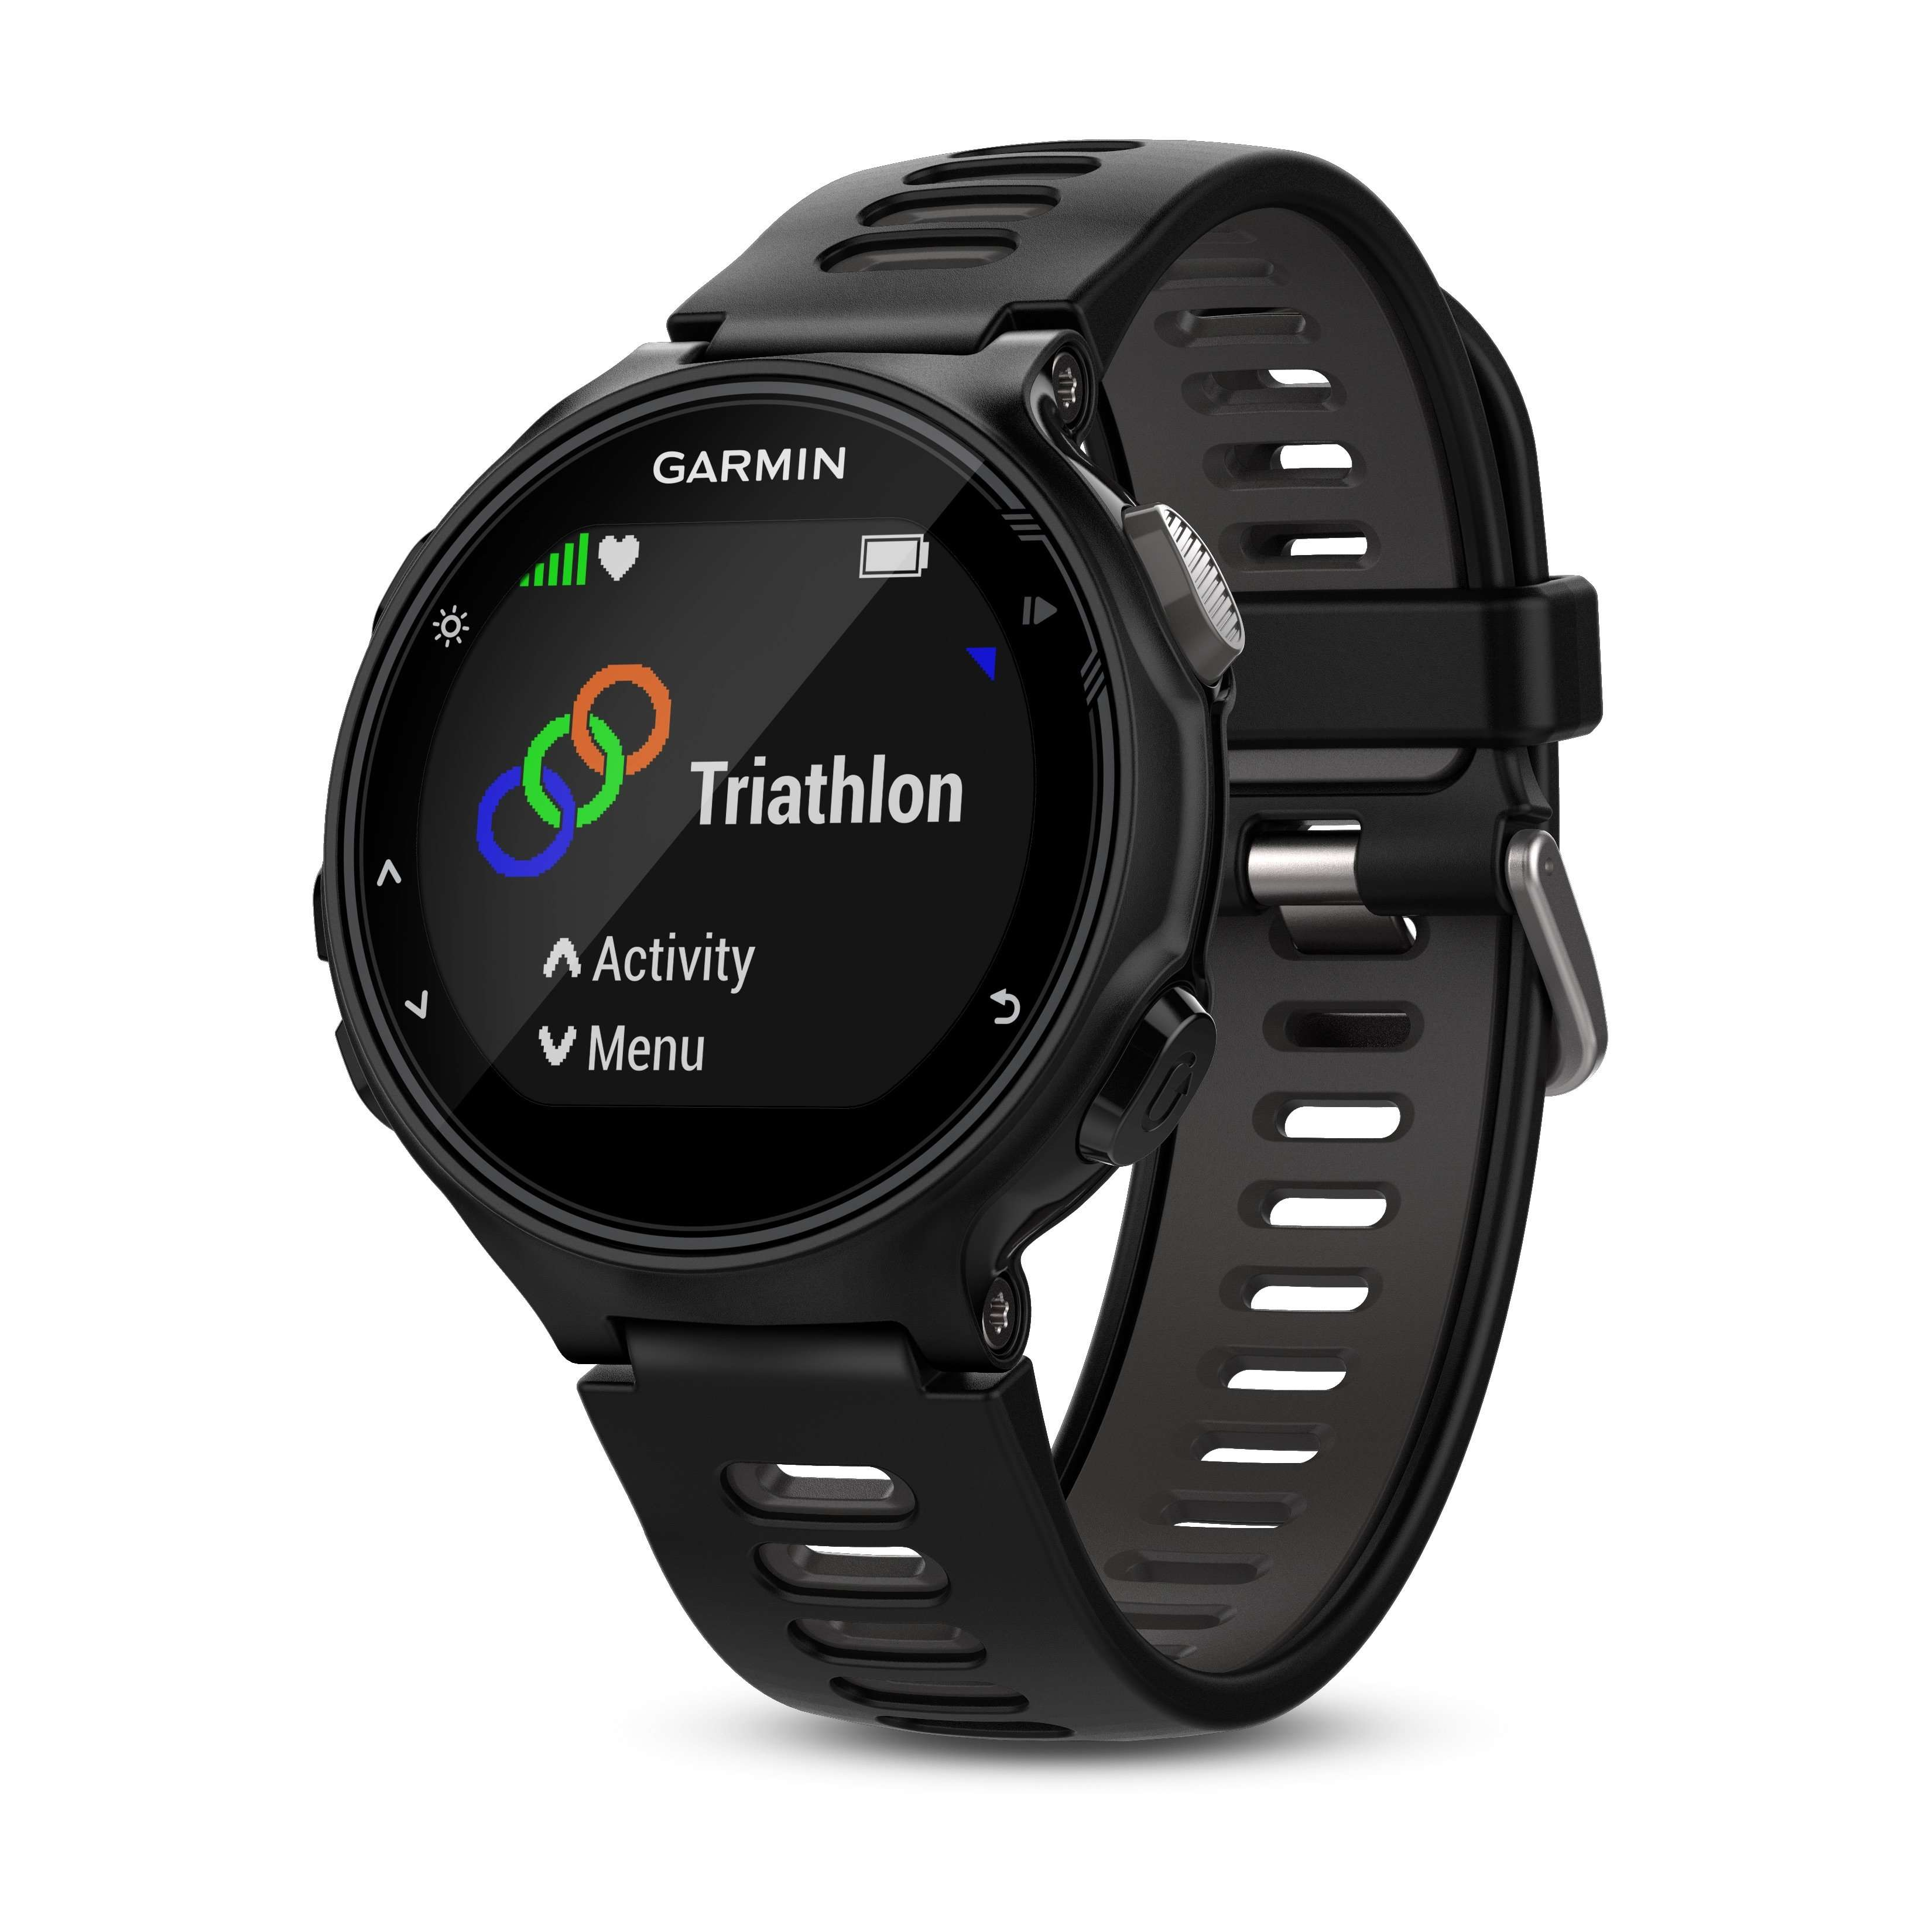 GARMIN Forerunner 735XT GPS Running Multi-Sport Watch